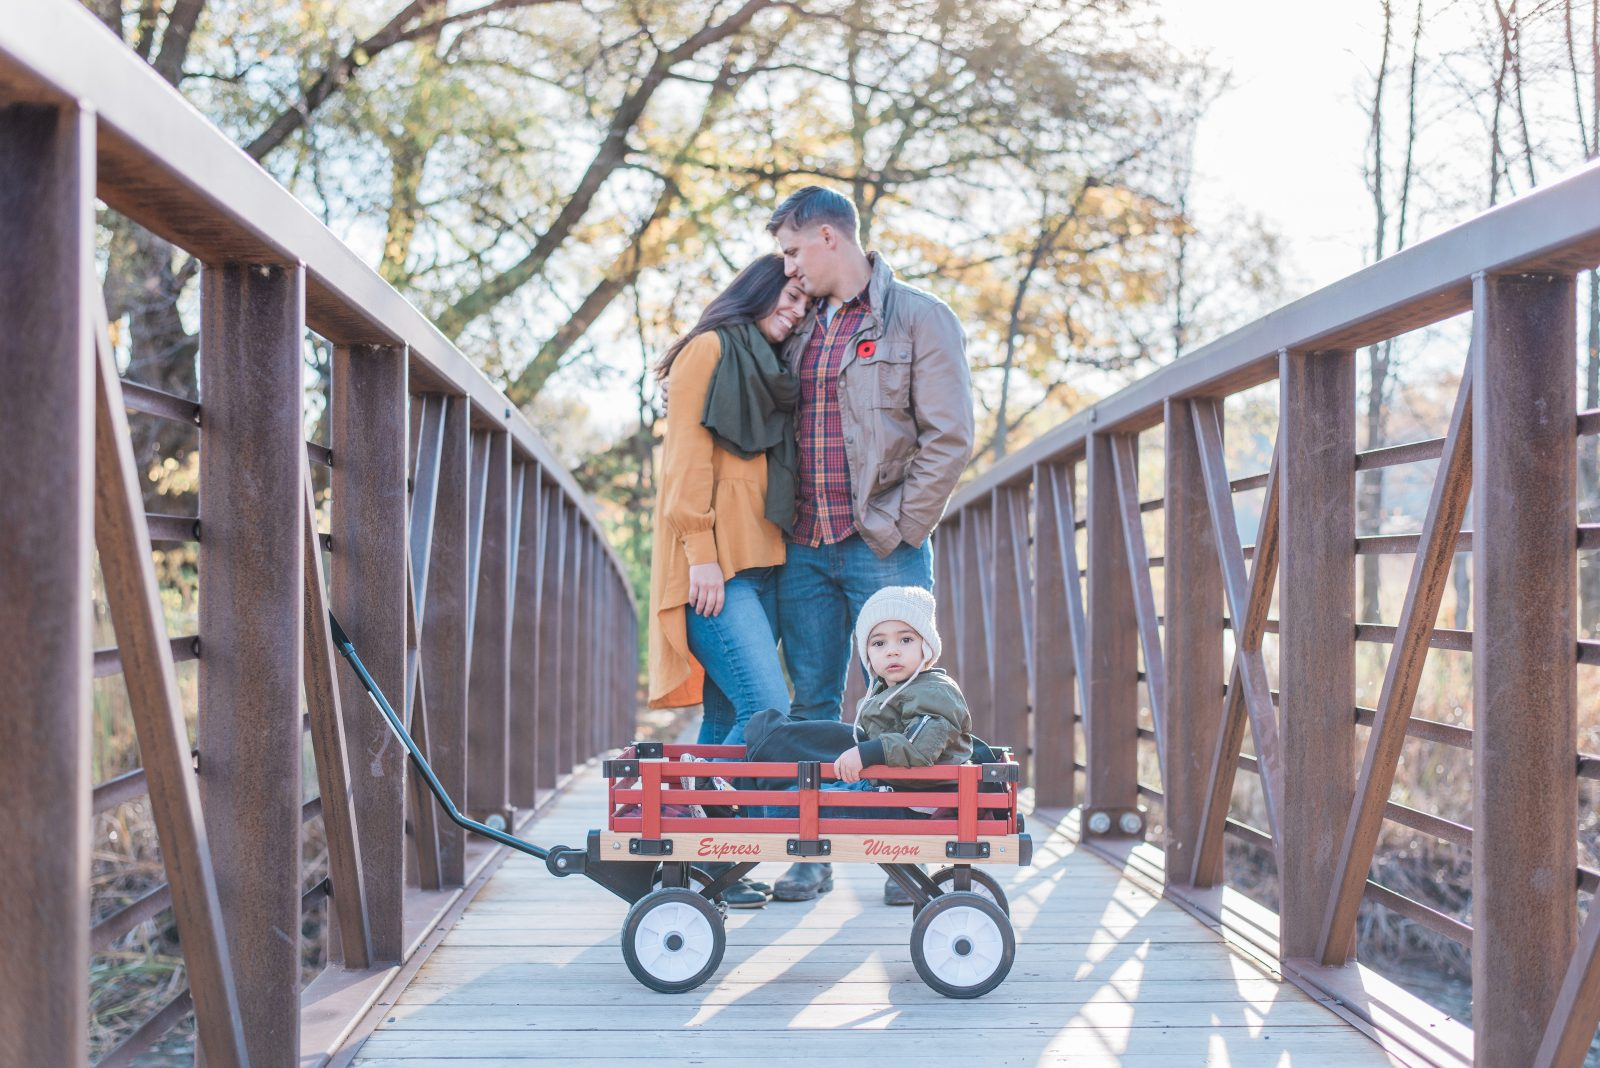 chapman mills conservation area - ottawa photography locations - fall family photo